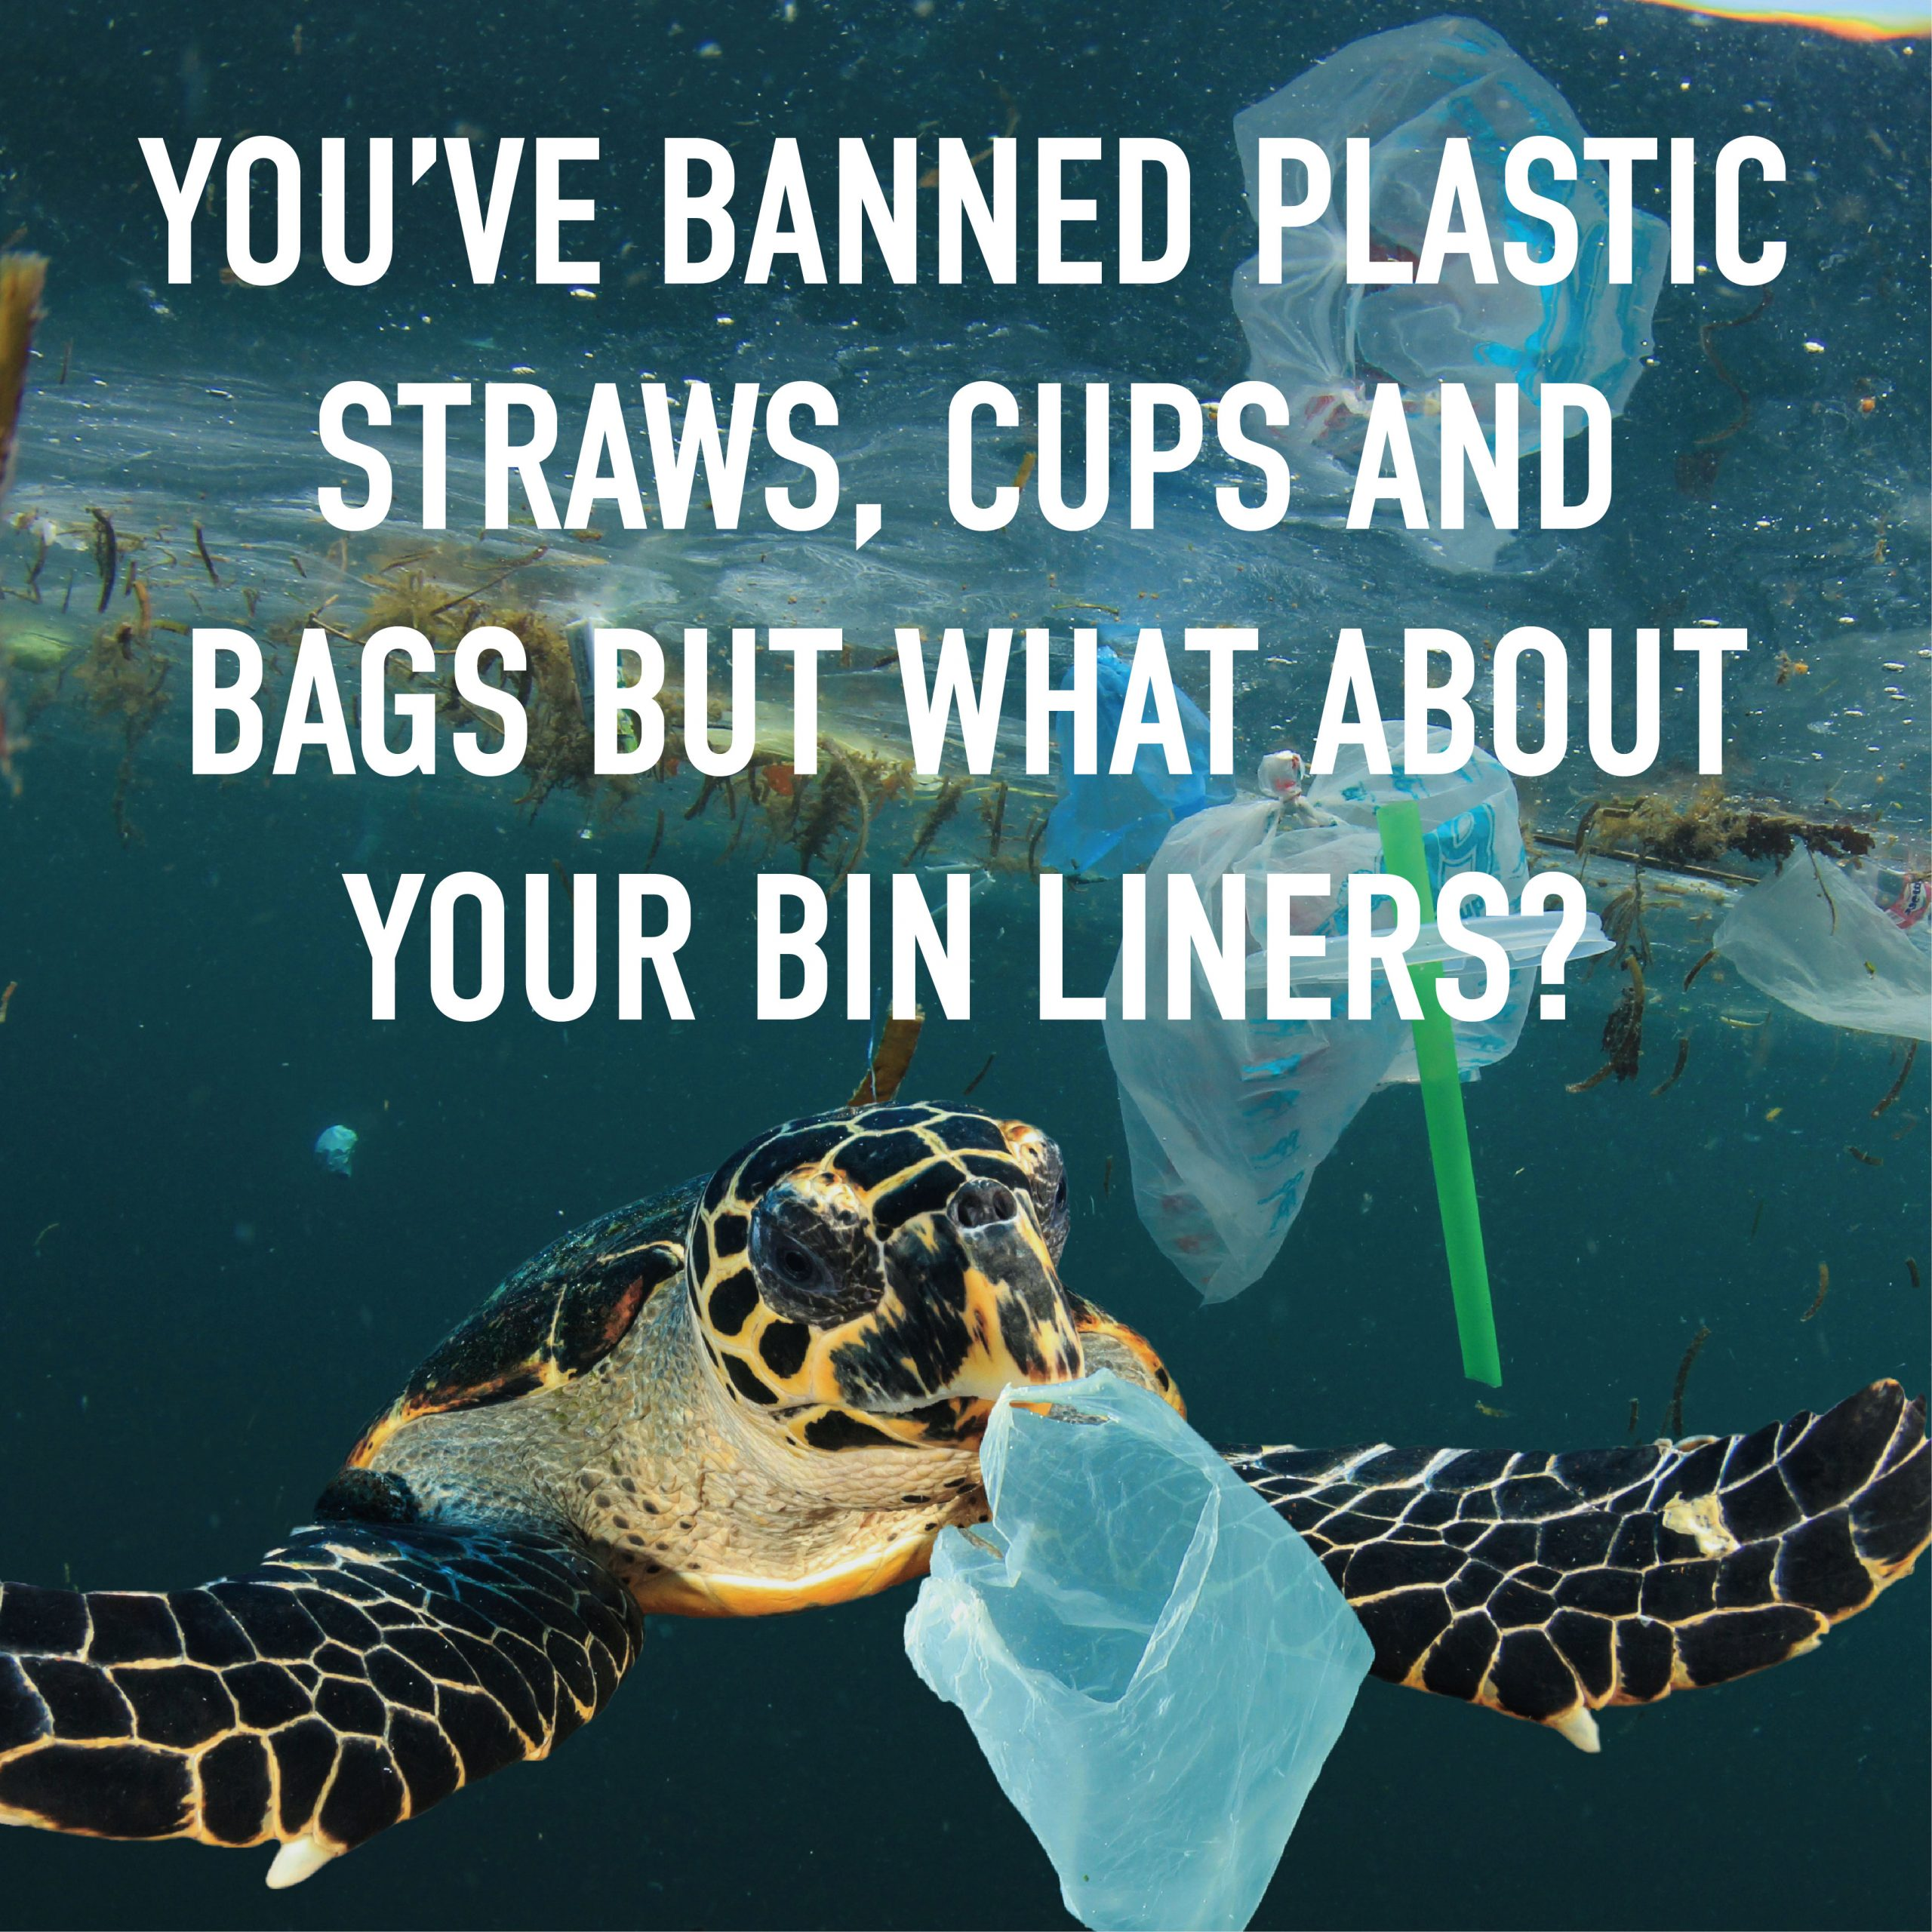 youve banned plastic straws cups and bags but what about bin liners